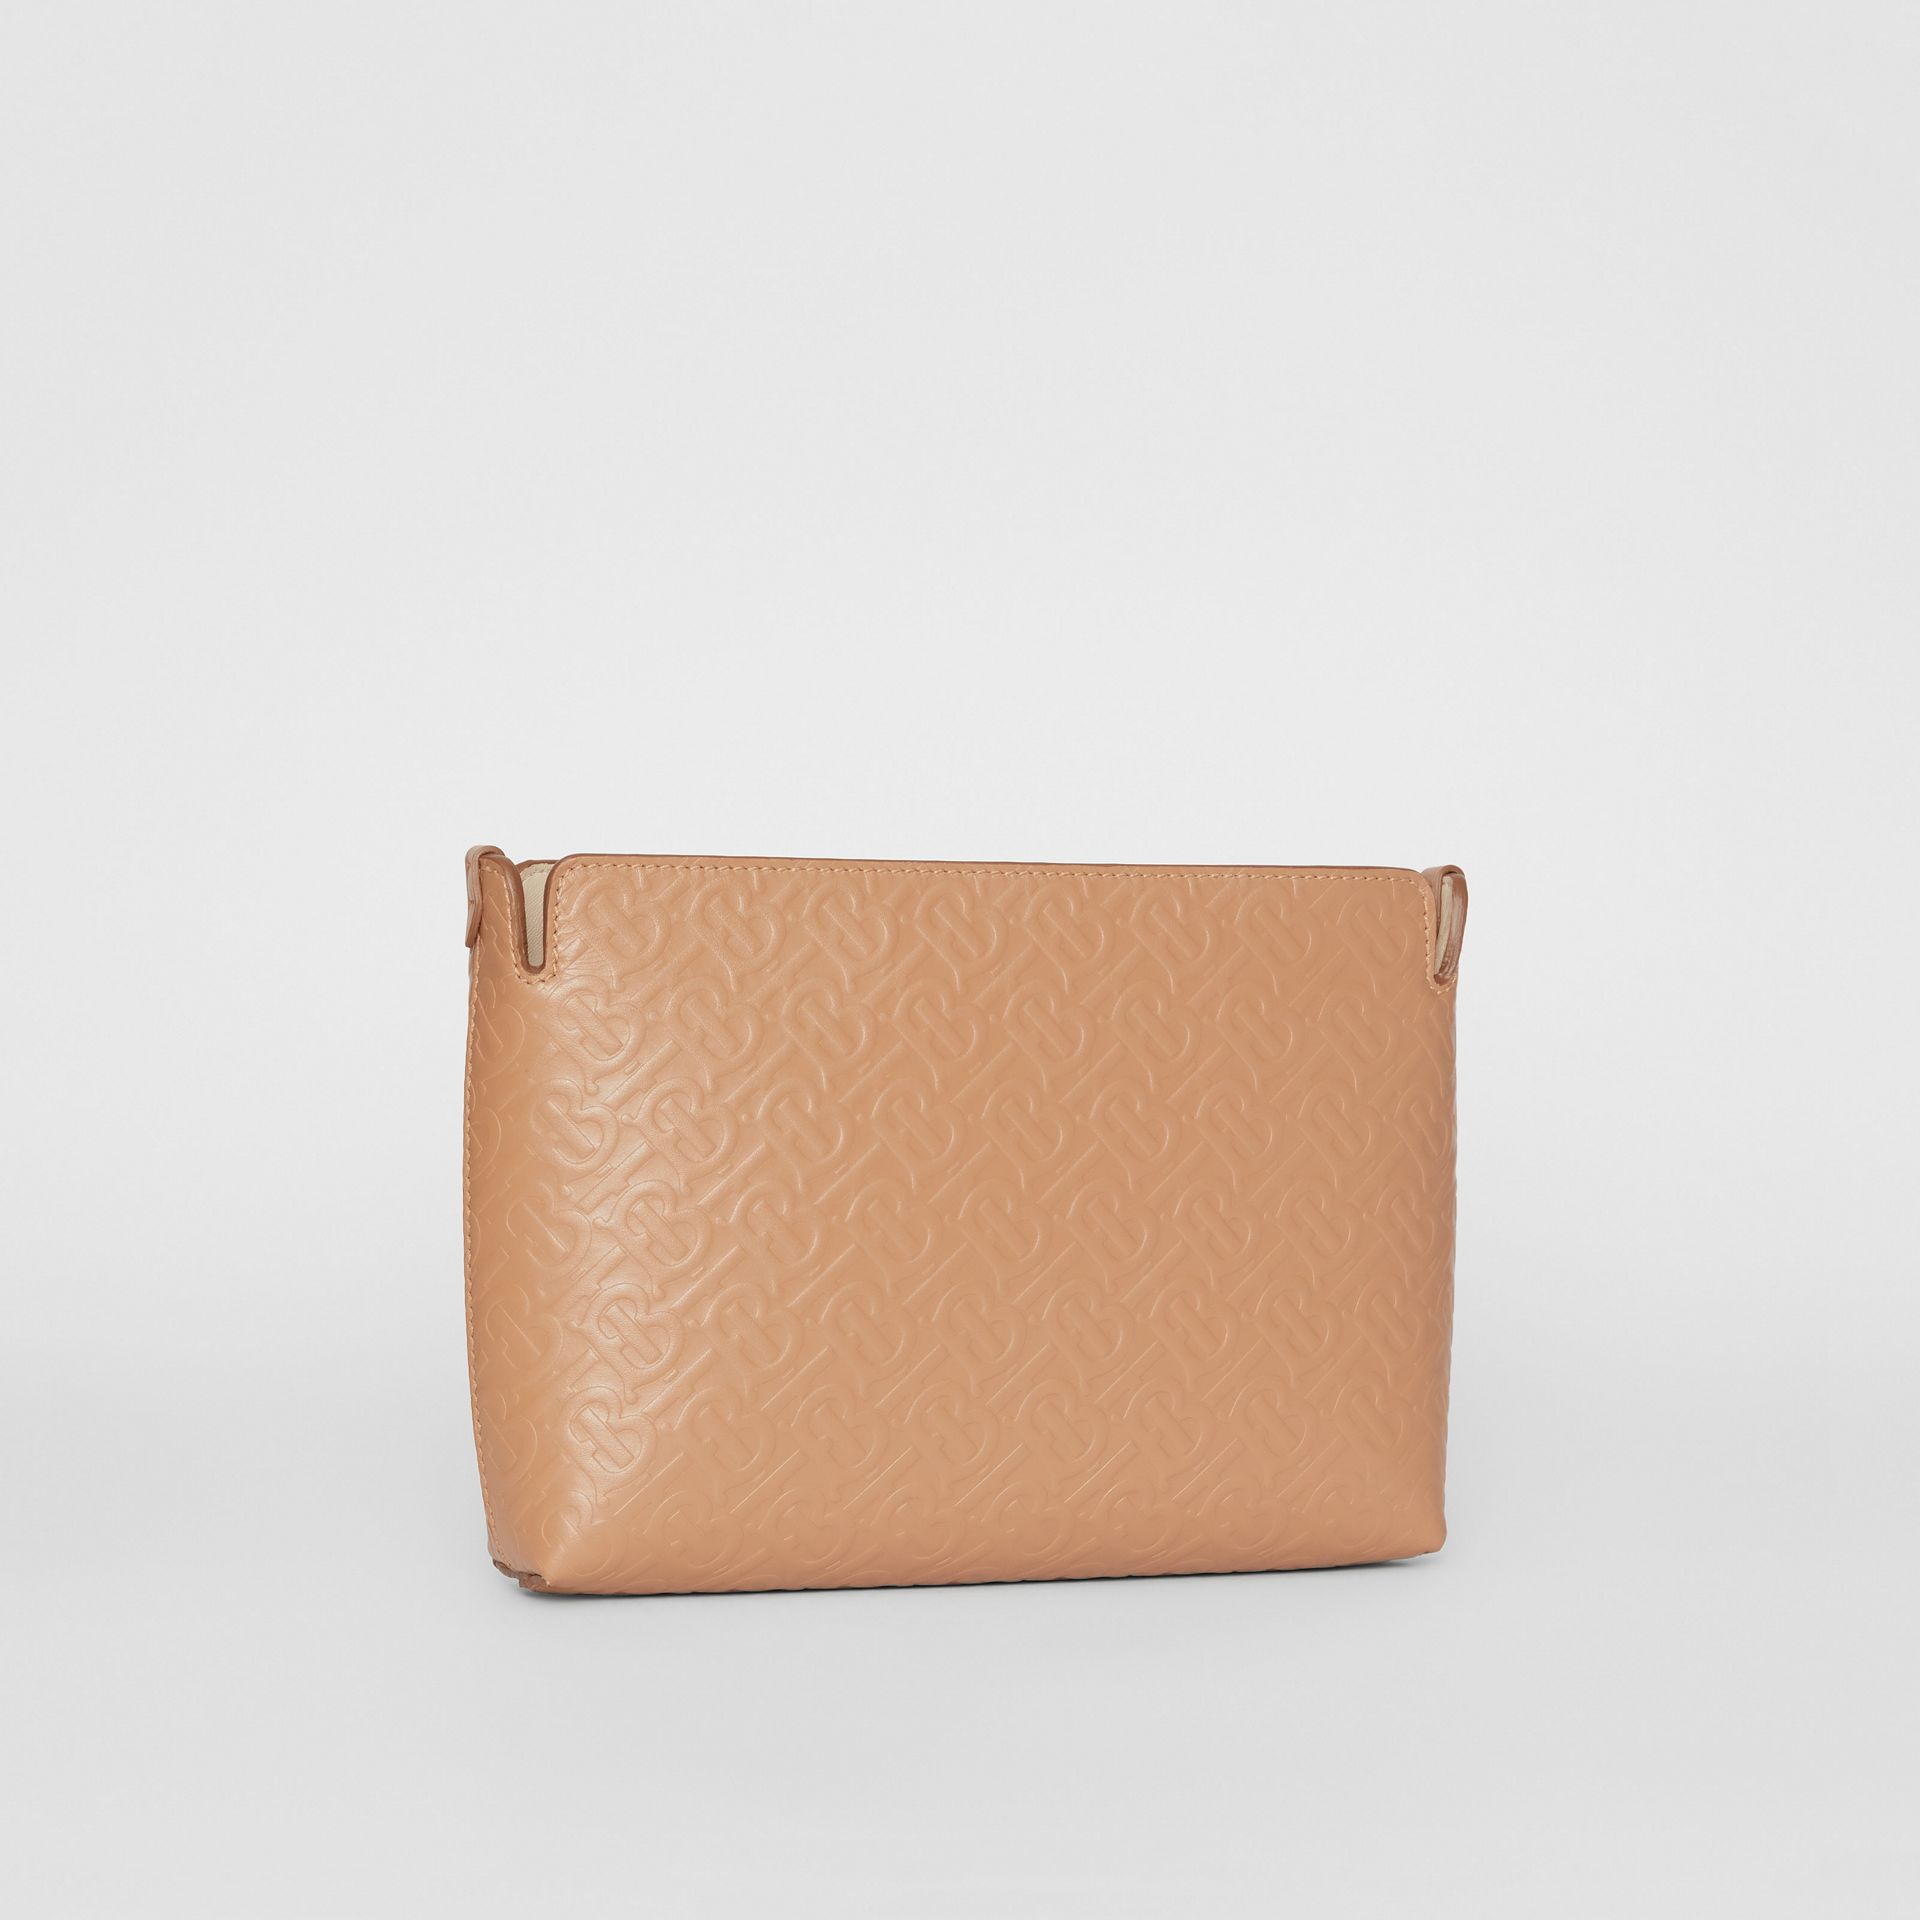 Medium Monogram Leather Clutch in Light Camel - Women | Burberry United Kingdom - gallery image 5